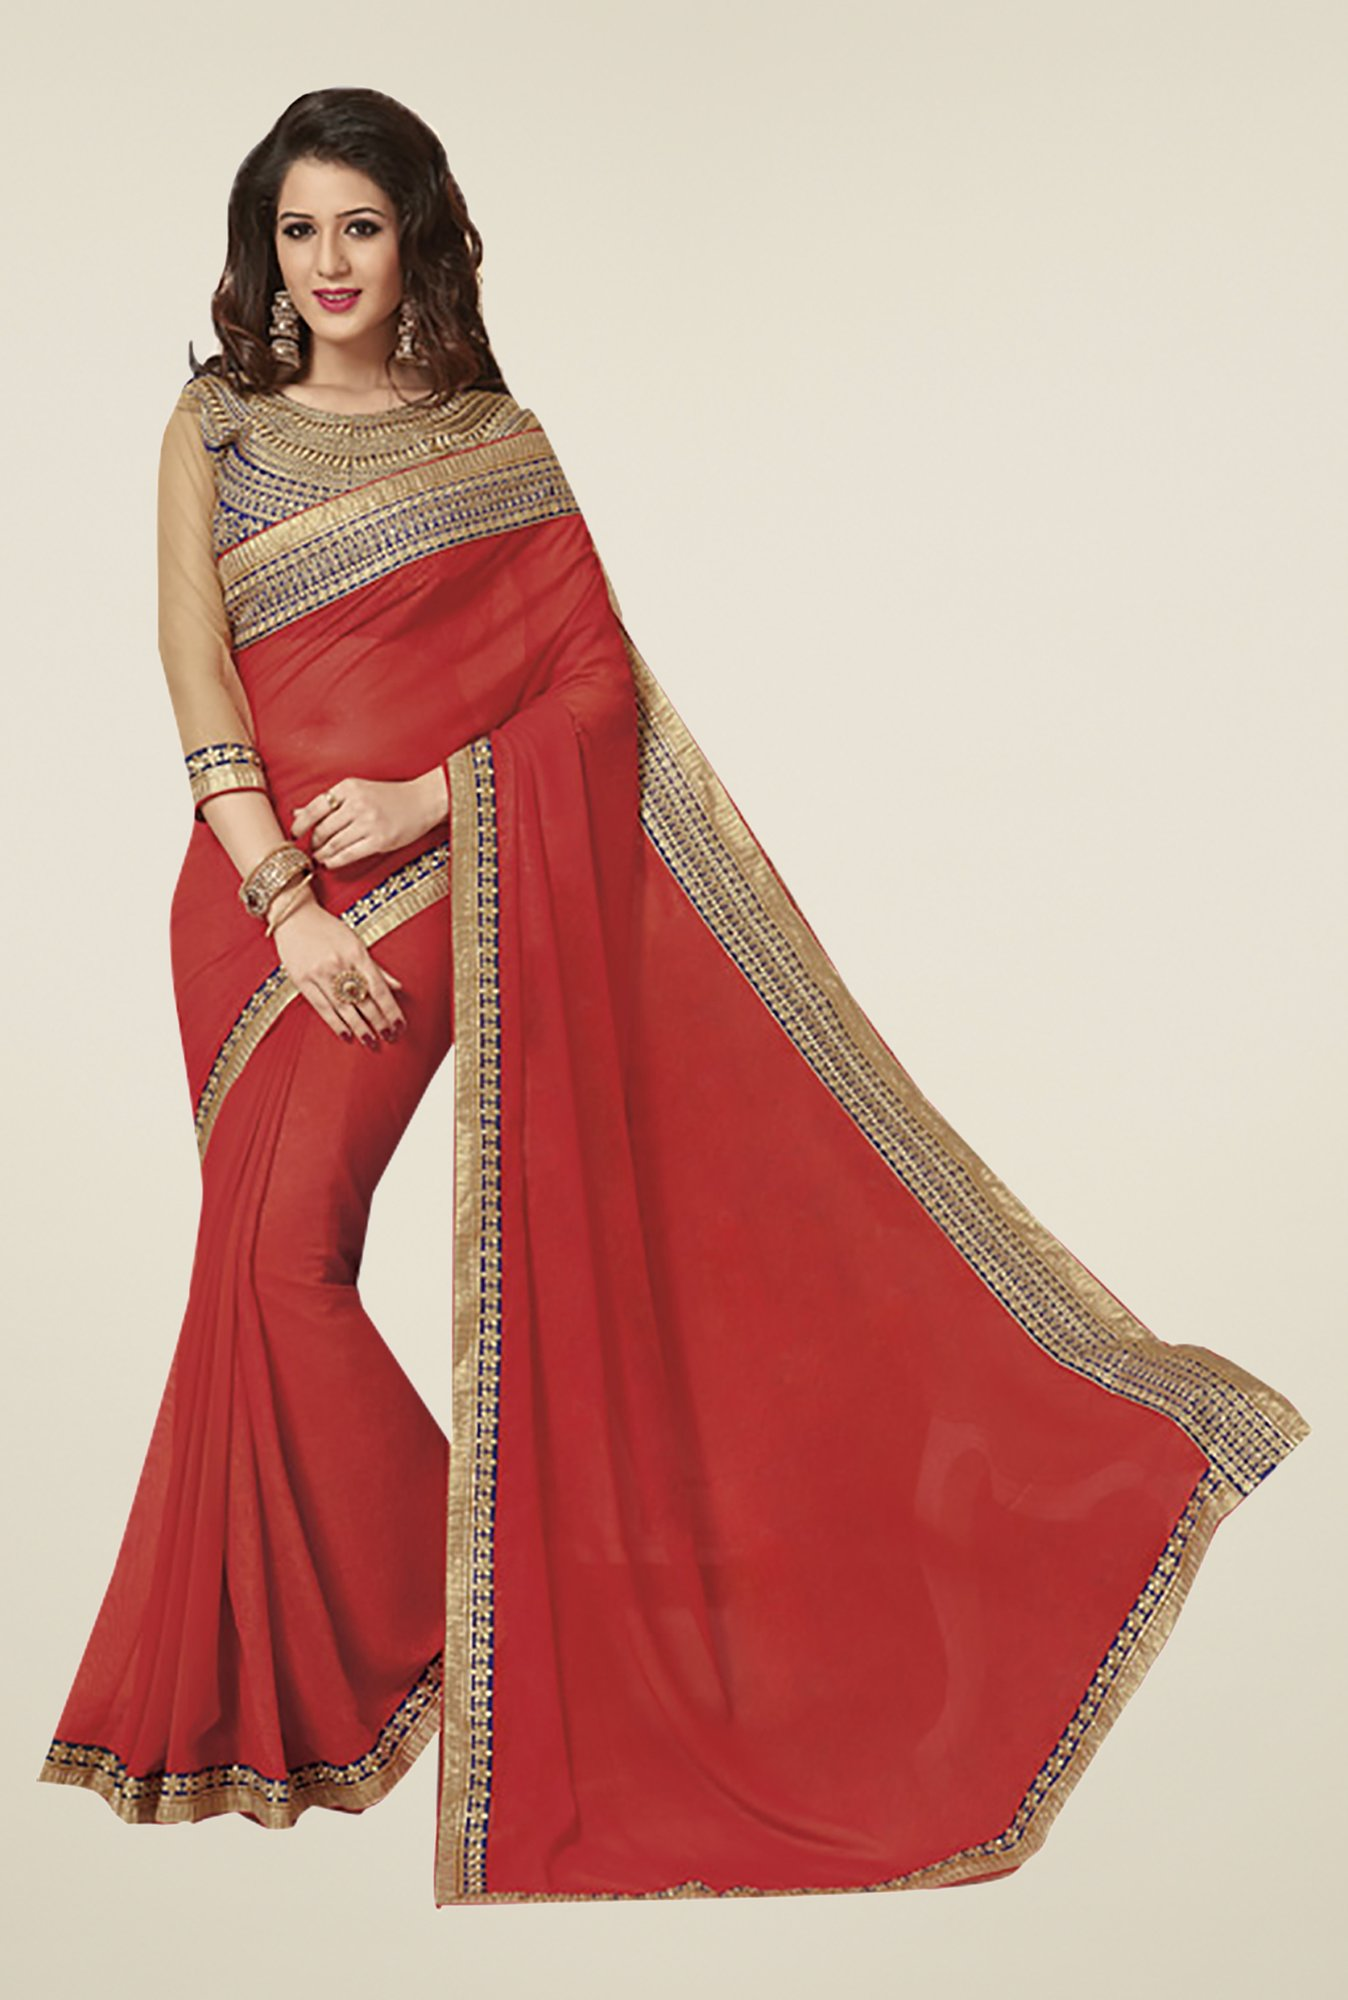 Ishin Red Faux Georgette & Chiffon Saree